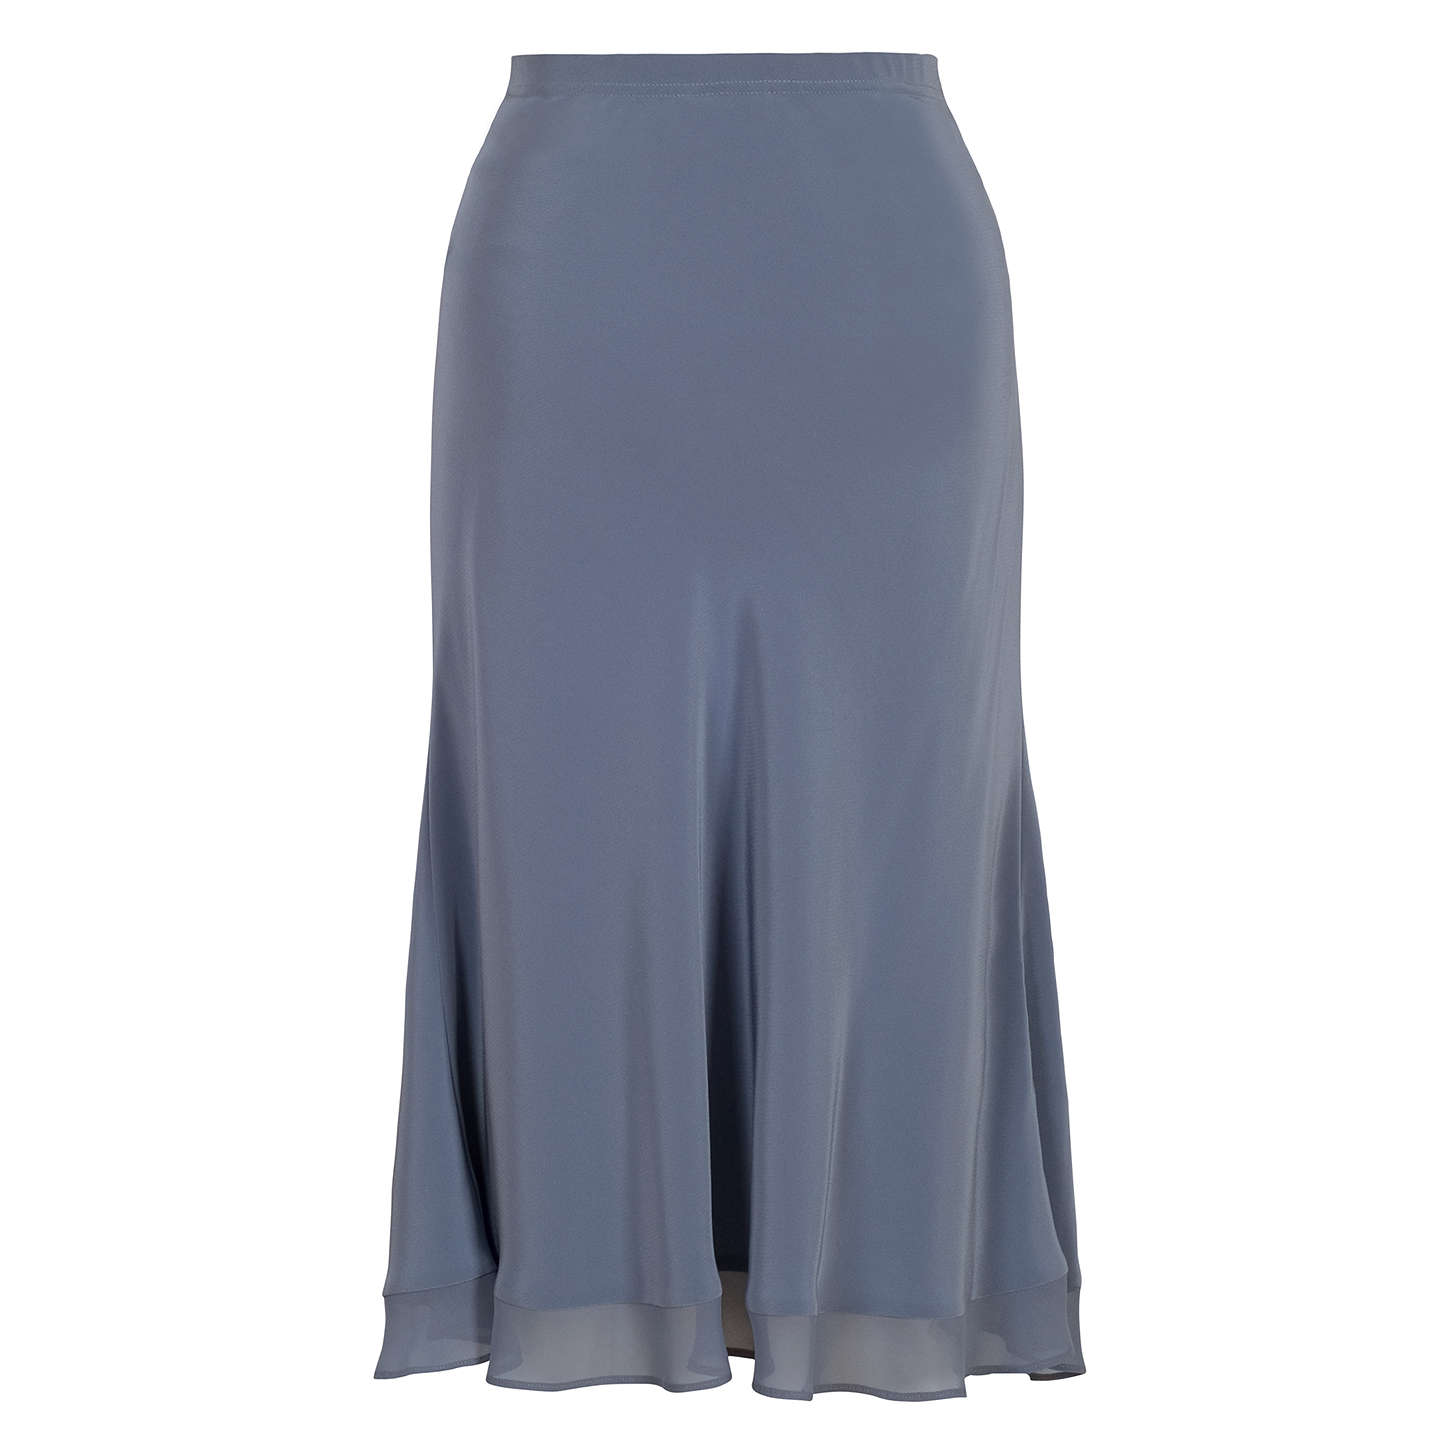 BuyChesca Satin Crepe Skirt, Steel, 14 Online at johnlewis.com